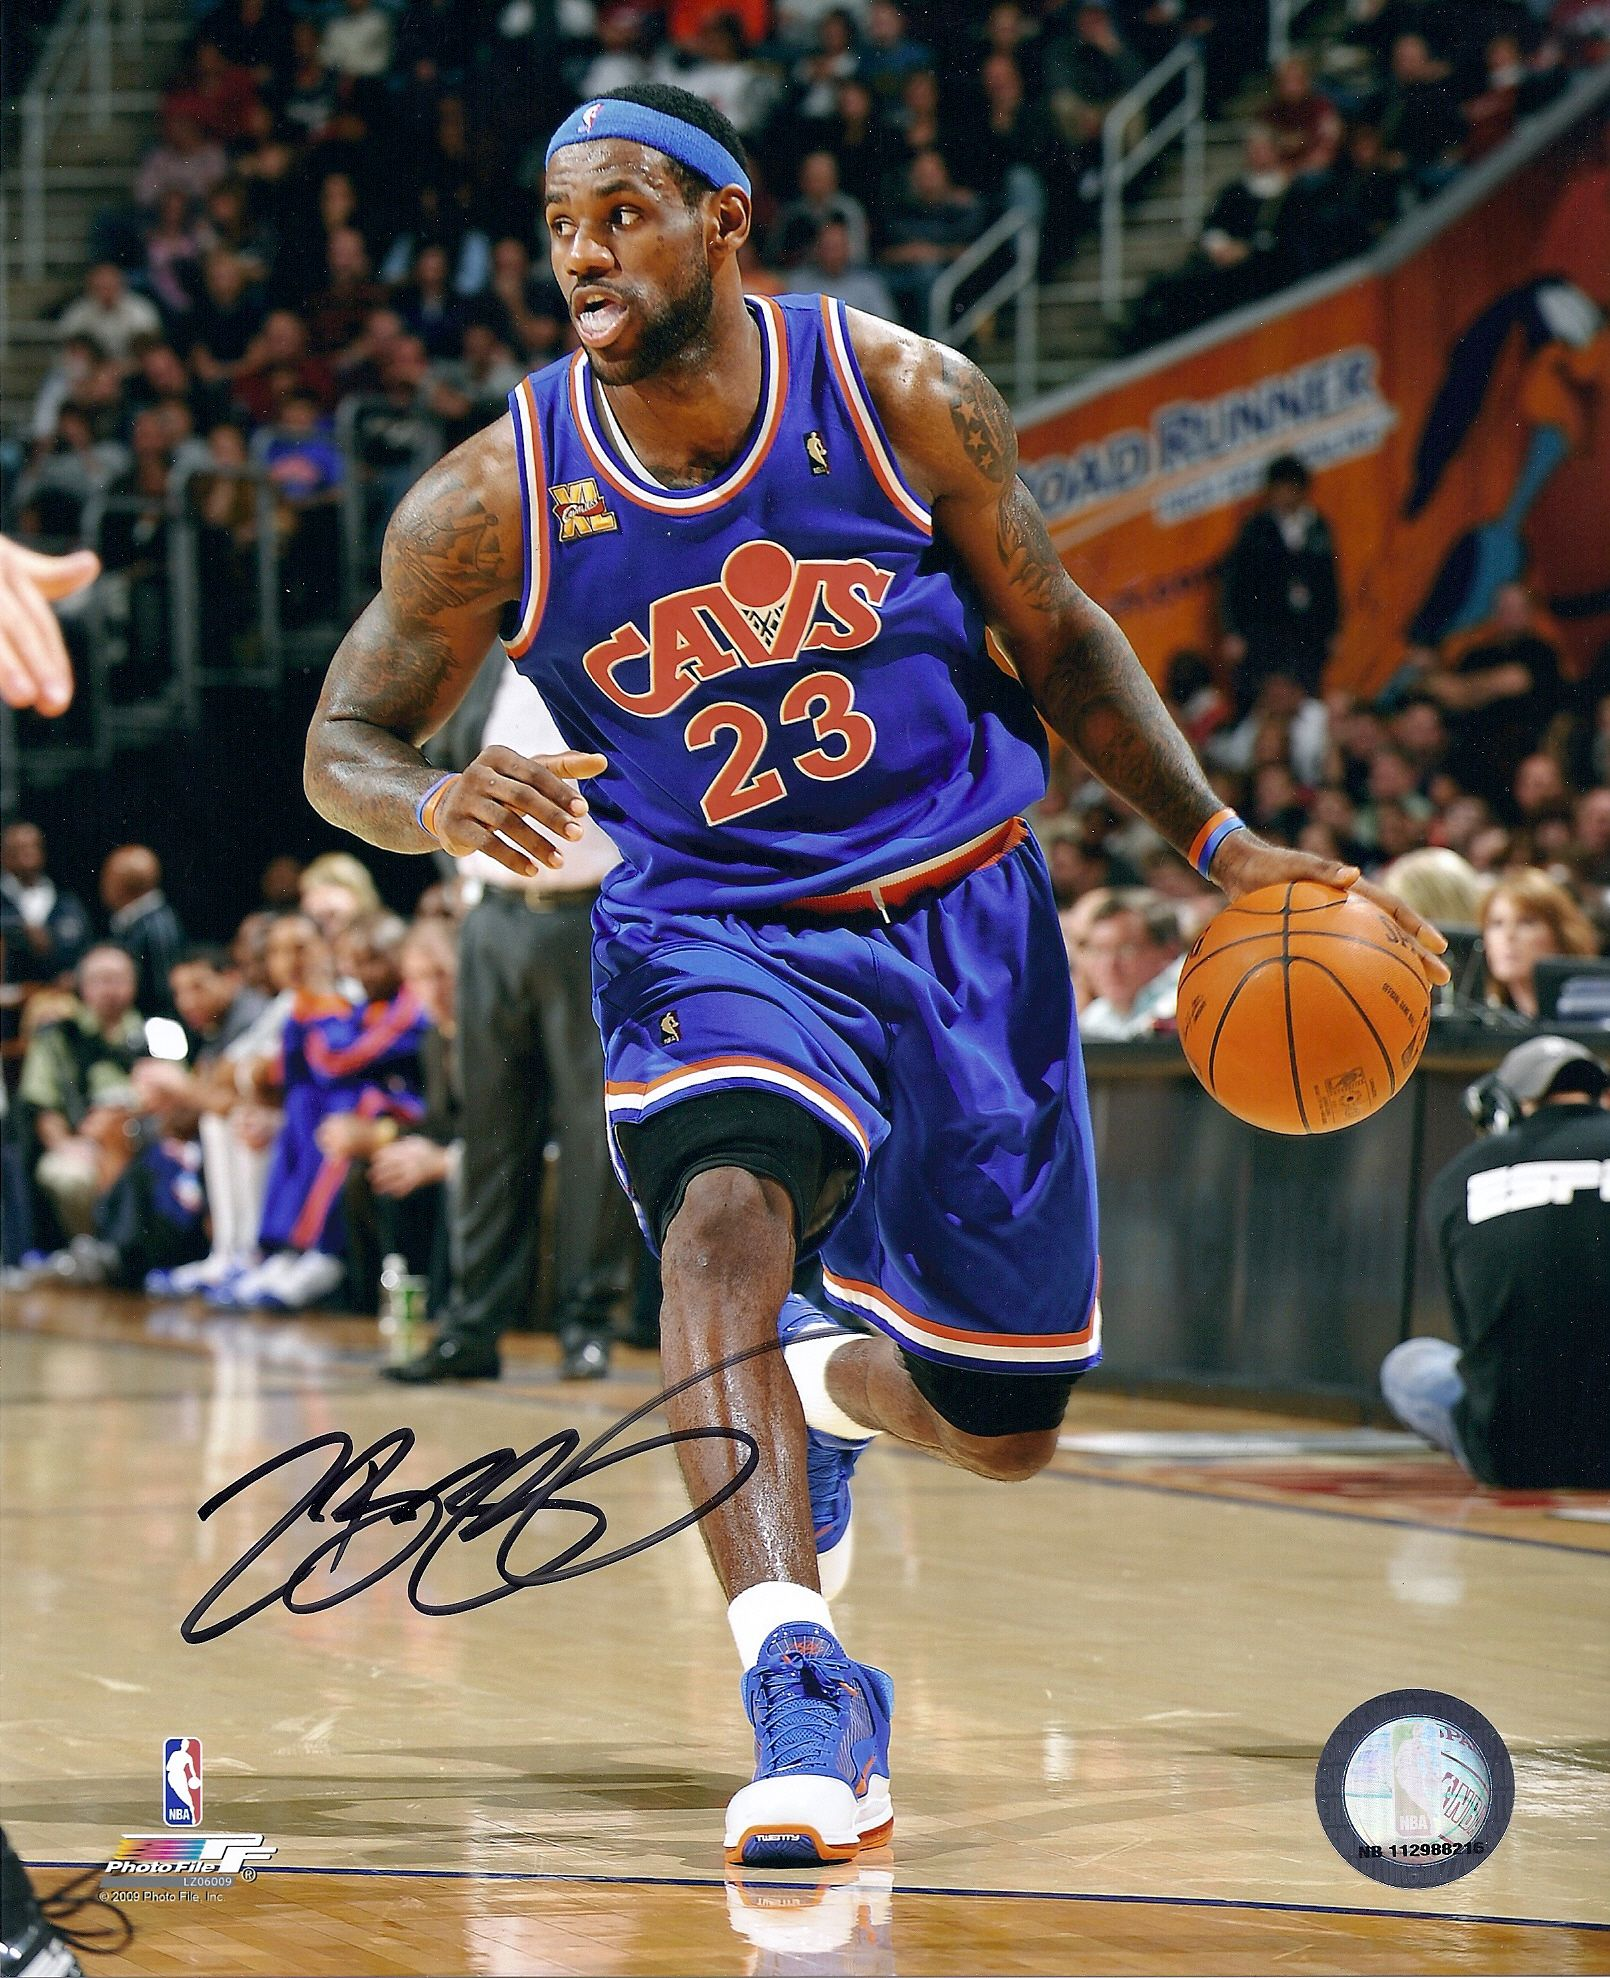 This Is For A Rare Lebron James Hand Signed Autographed 8x10 Photo With Coa With Matching Lebron James Cleveland Cavaliers Lebron James Cleveland Lebron James